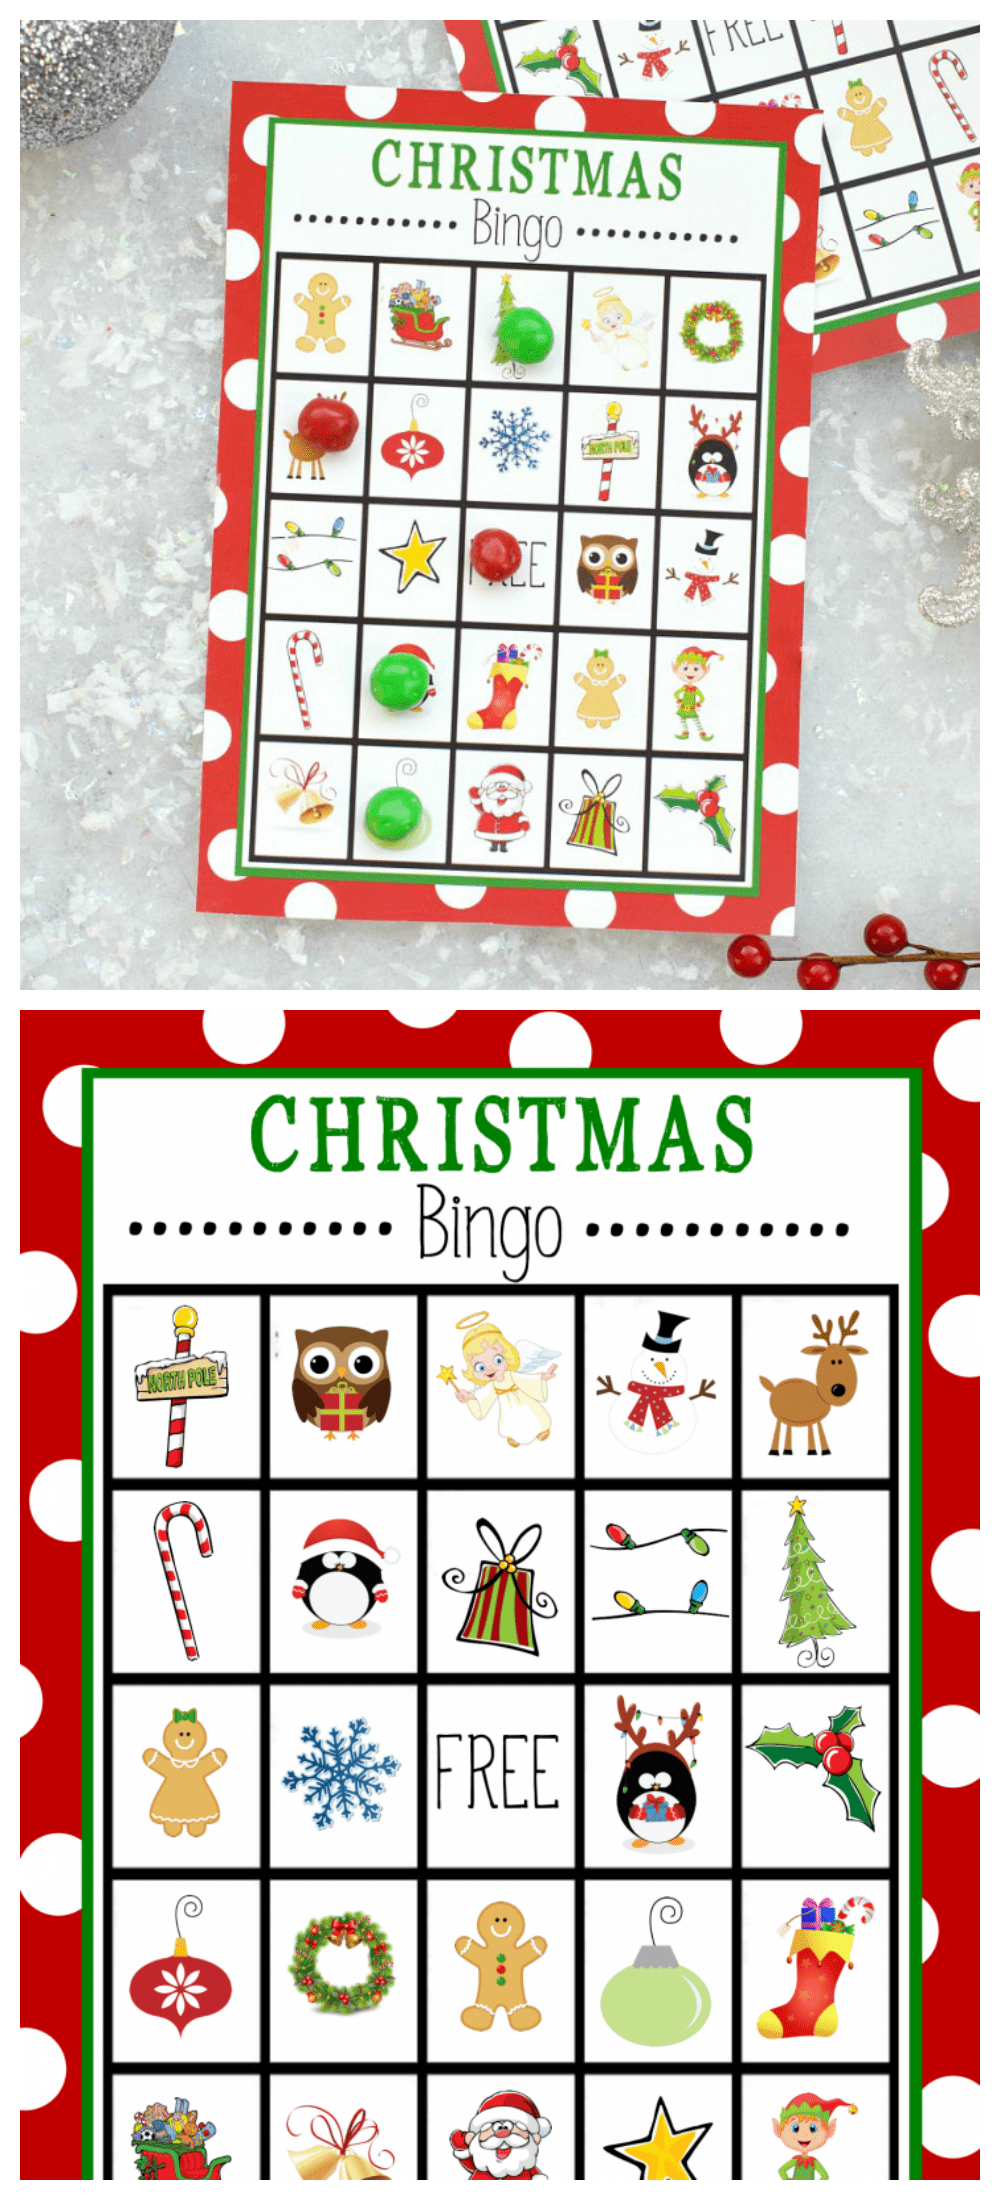 photo relating to Christmas Bingo Card Printable identified as Free of charge Printable Xmas Bingo Sport Pleasurable-Squared